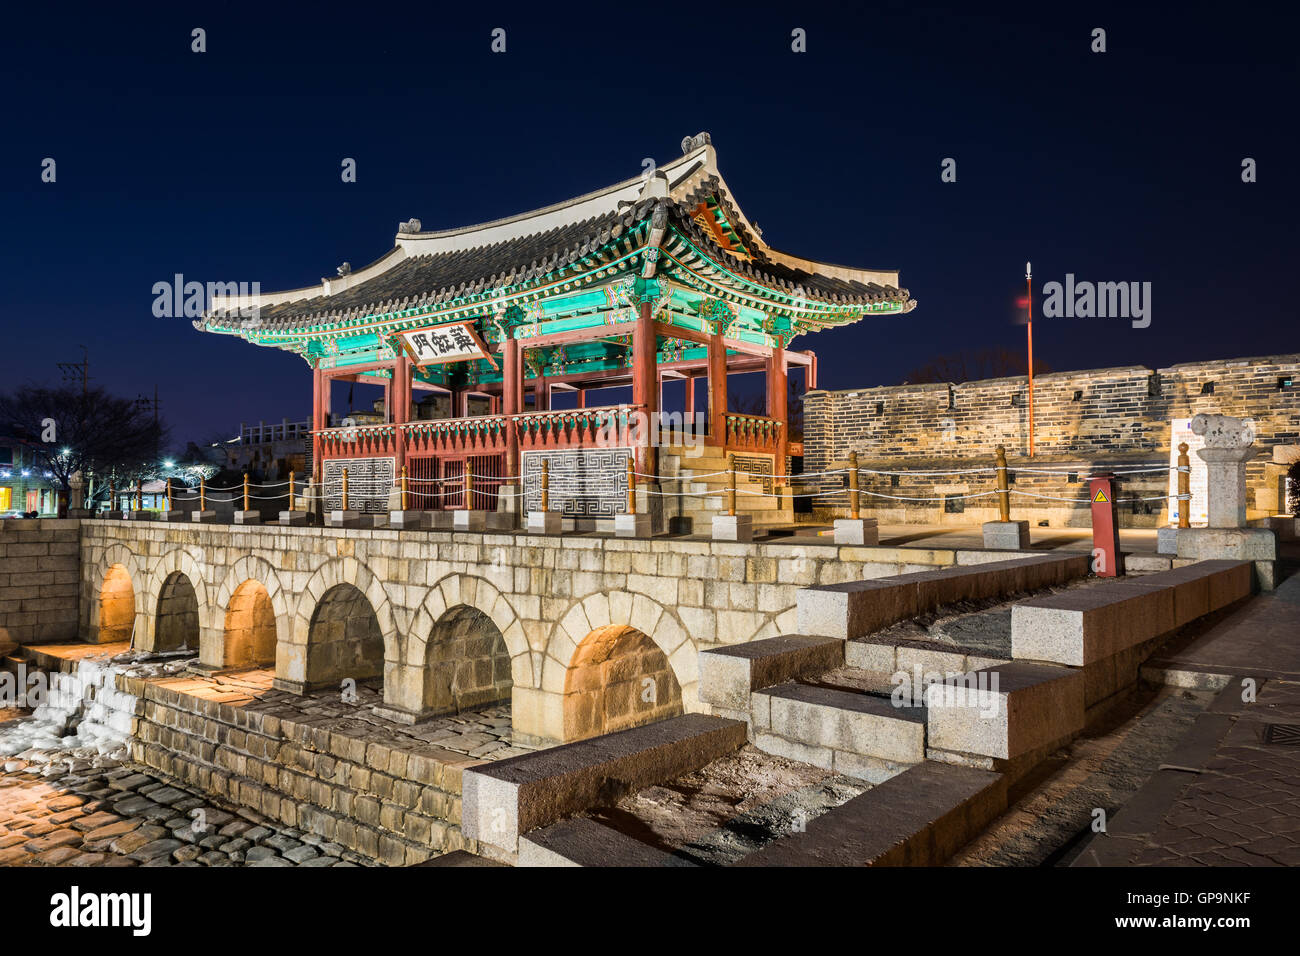 Korea,Hwaseong Fortress, Traditional Architecture of Korea in Suwon at Night - Stock Image